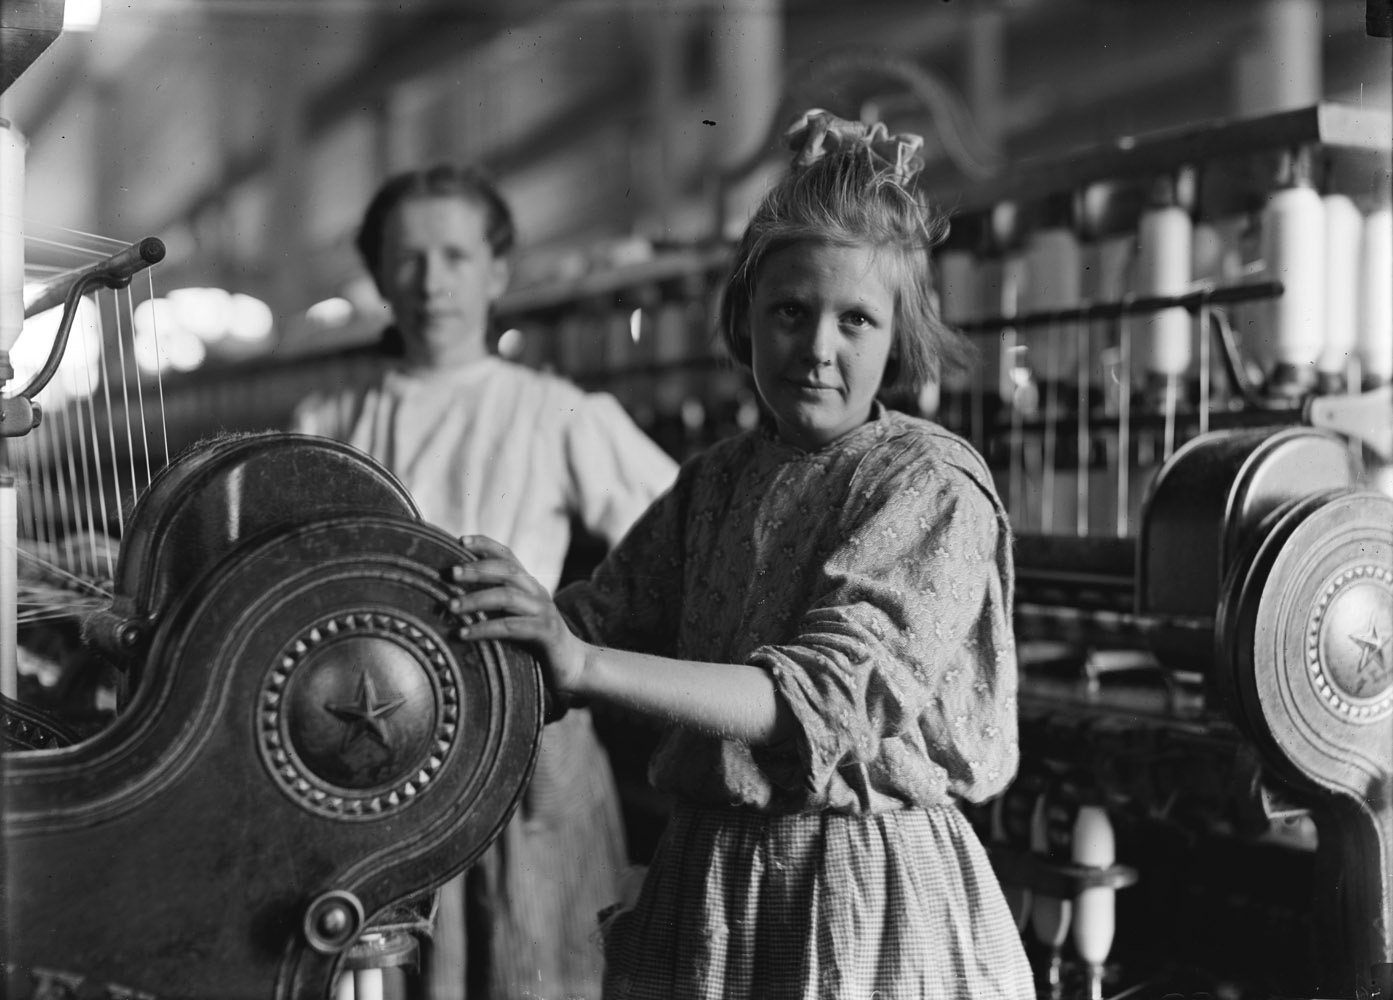 "Sadie Barton, spinner in cotton mill, 13 years old, Lancaster, South Carolina, 1908. A typical Spinner Lancaster Cotton Mills, S.C.  —Hine's original caption""Mom may have been faced with things we will never know, but it did not destroy her spunk and strength. She was very much with me the day I learned about her picture. No words could ever explain the depth of emotion I felt when I first saw it, knowing my mother was the beautiful girl in that photograph."" —Daughter of Sadie Barton"